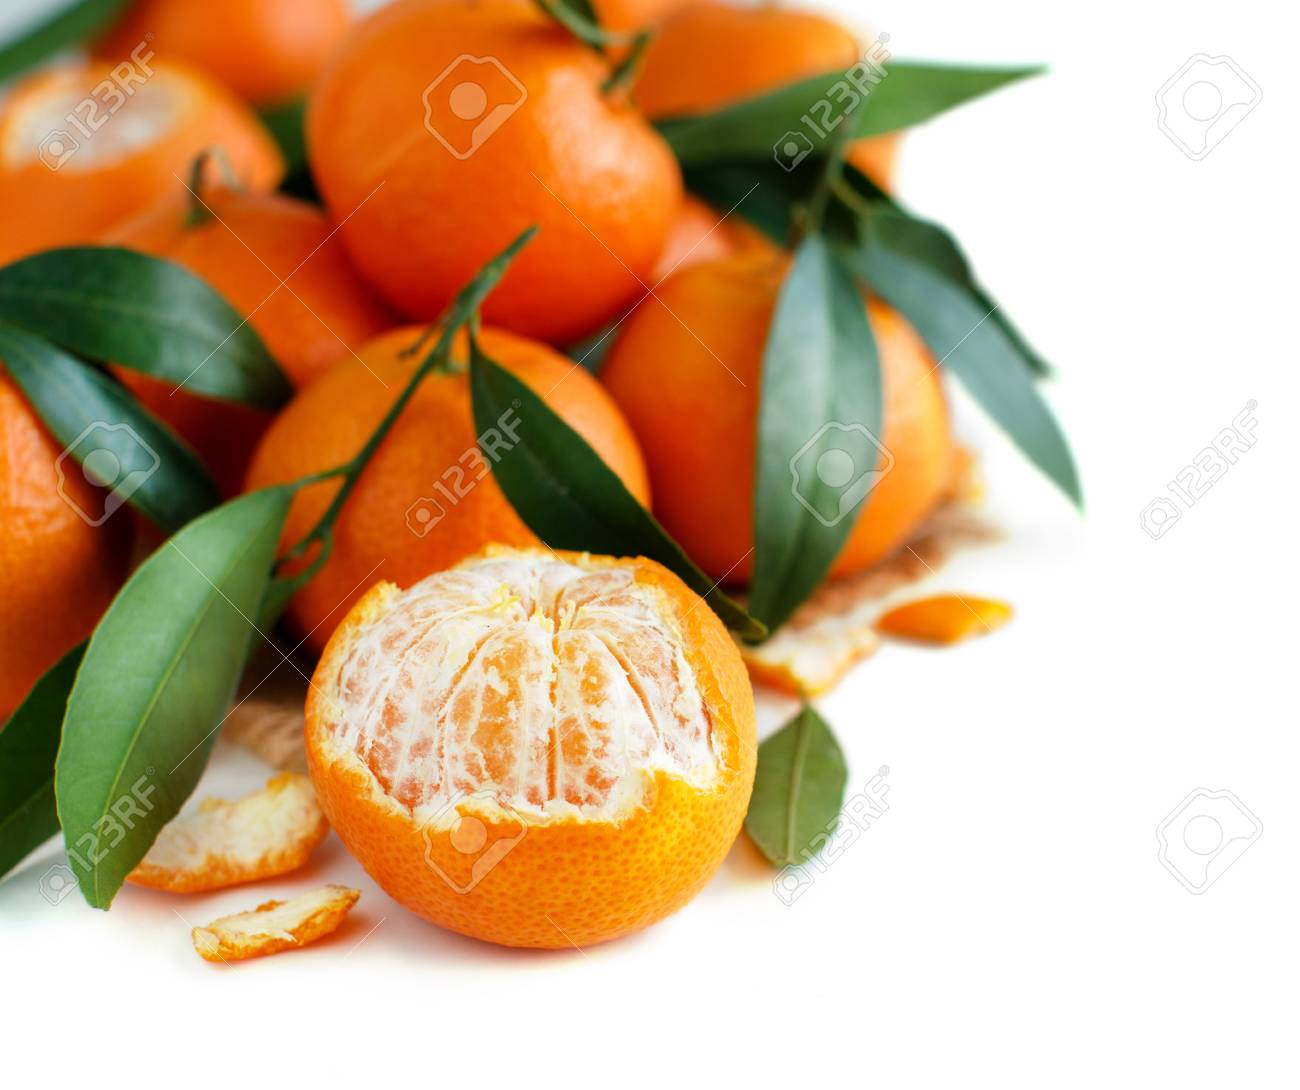 Mandarins with leaves on a white background close up Archivio Fotografico - 73184941